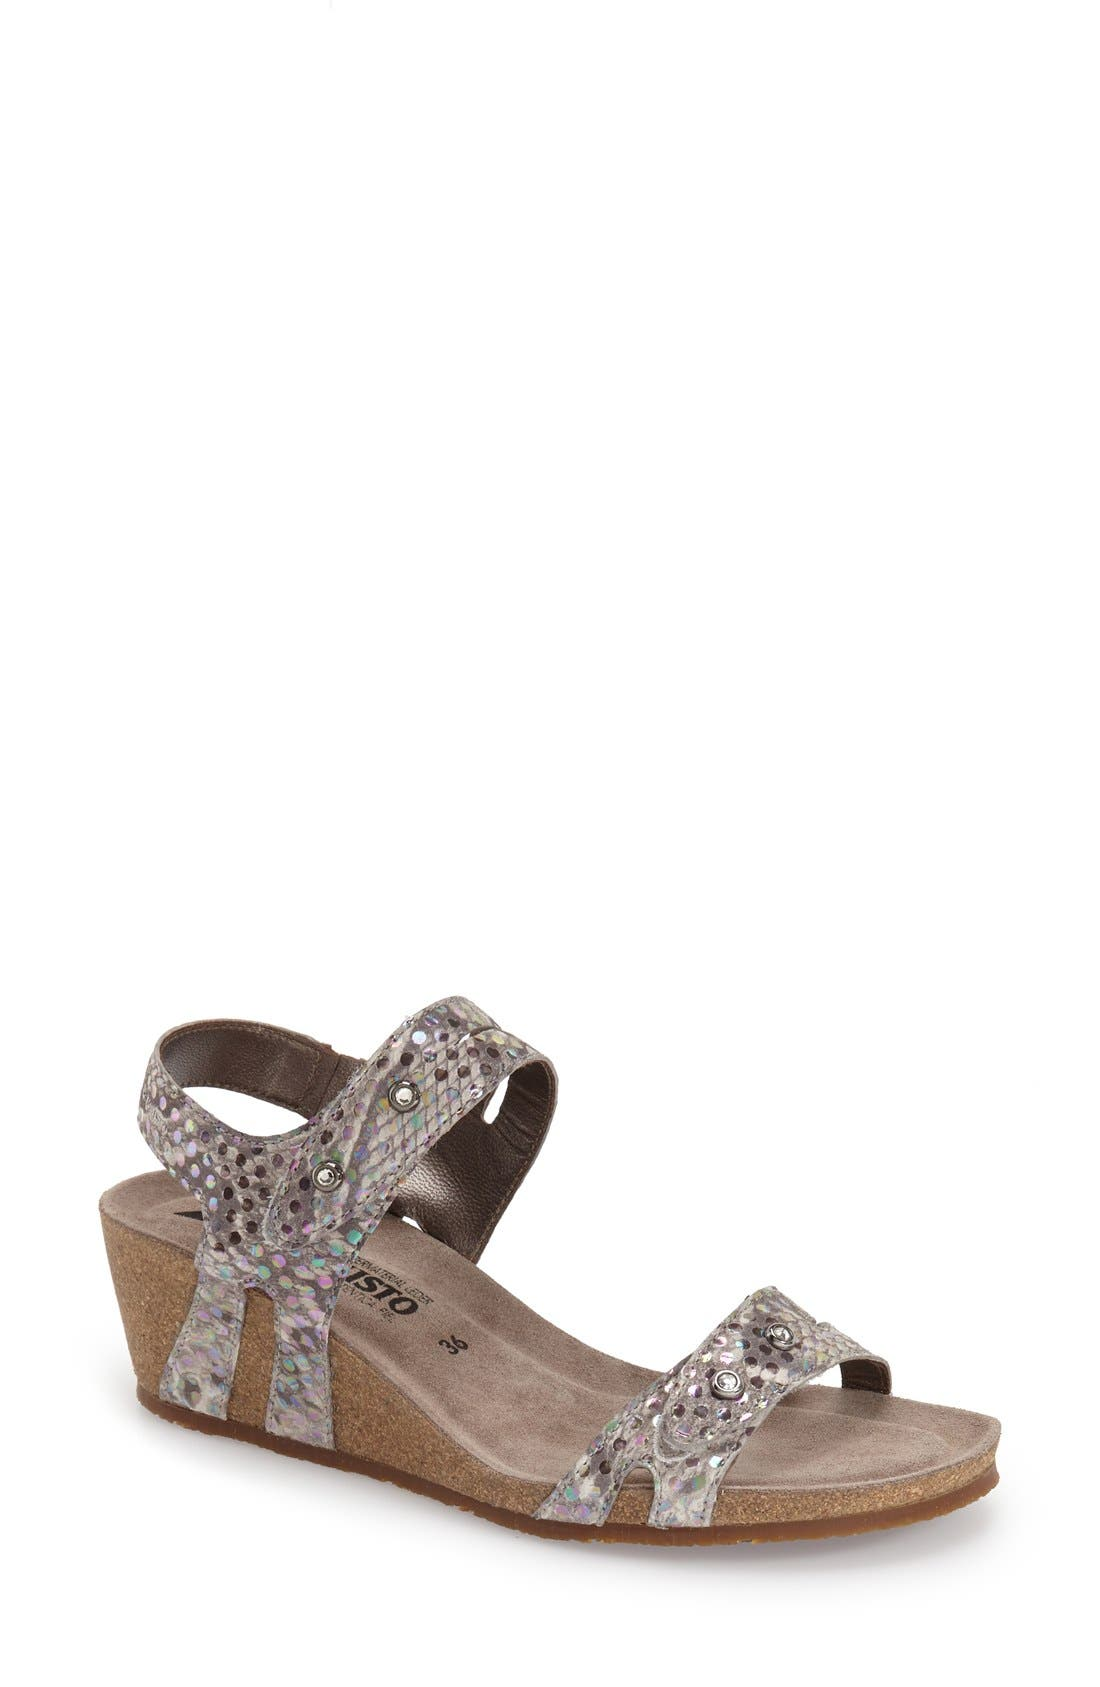 'Minoa' Wedge Sandal,                             Main thumbnail 1, color,                             Light Grey Mimosa